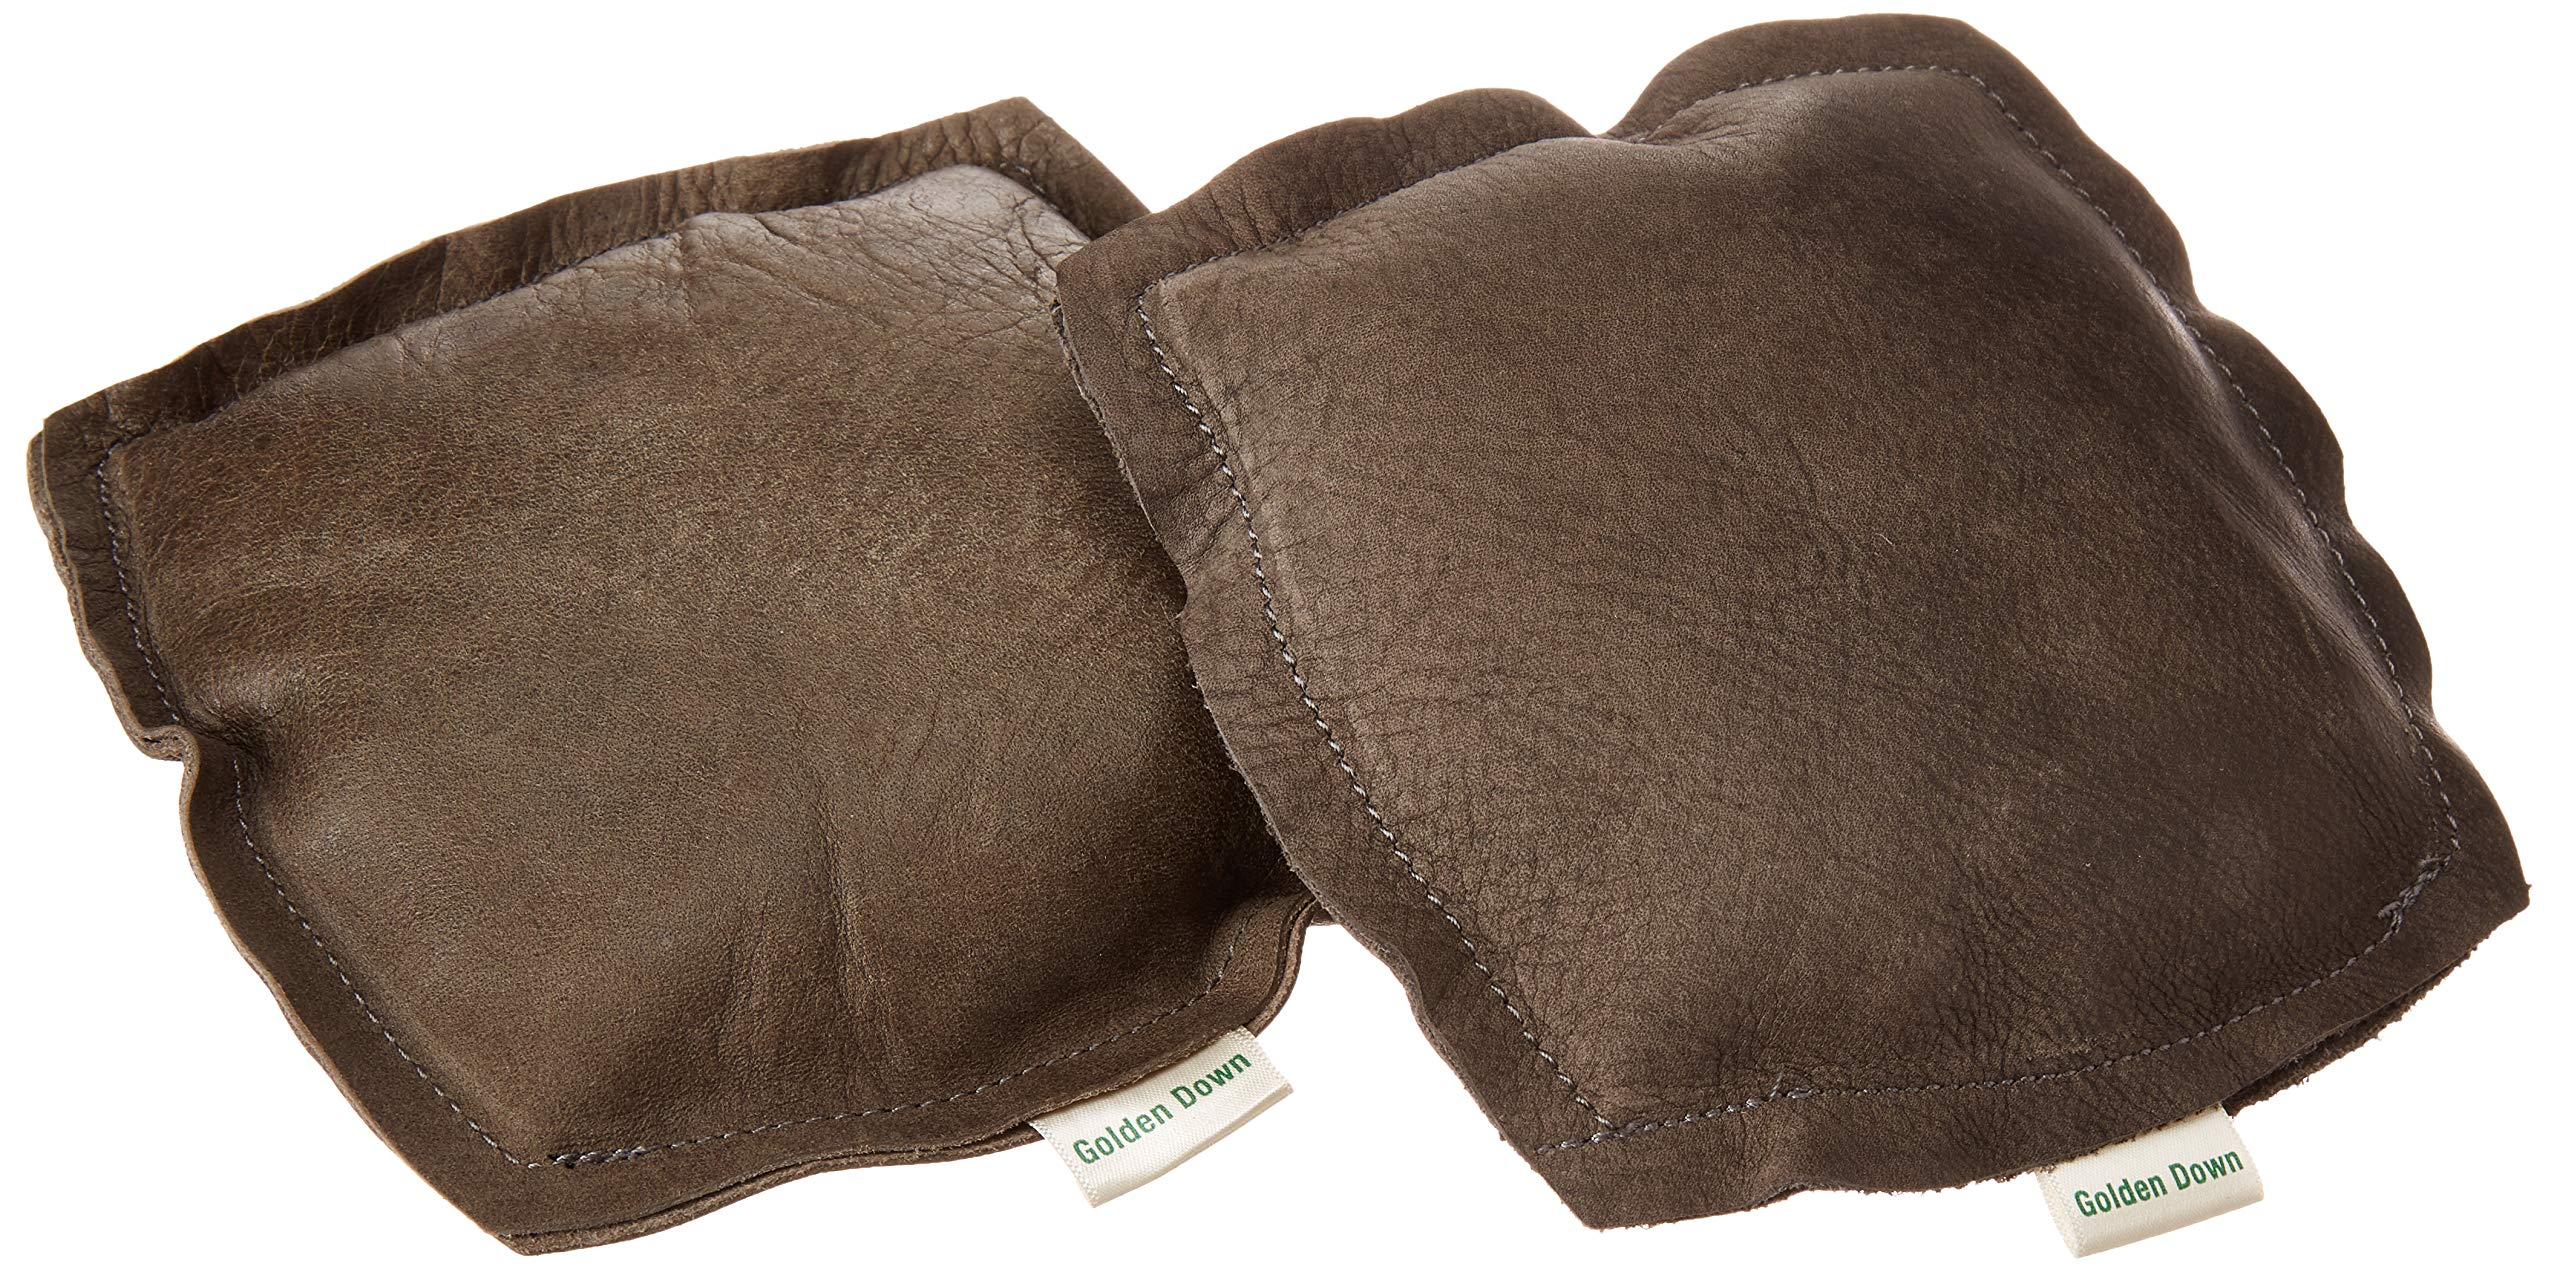 Golden Down Authentic Pair of Elbow Leather Cushions, Premium Elbow Support Pads with Soft Microfiber, Crafted from Carefully Selected Excess New Genuine Leather, Random Color (6''x6'') by Golden Down